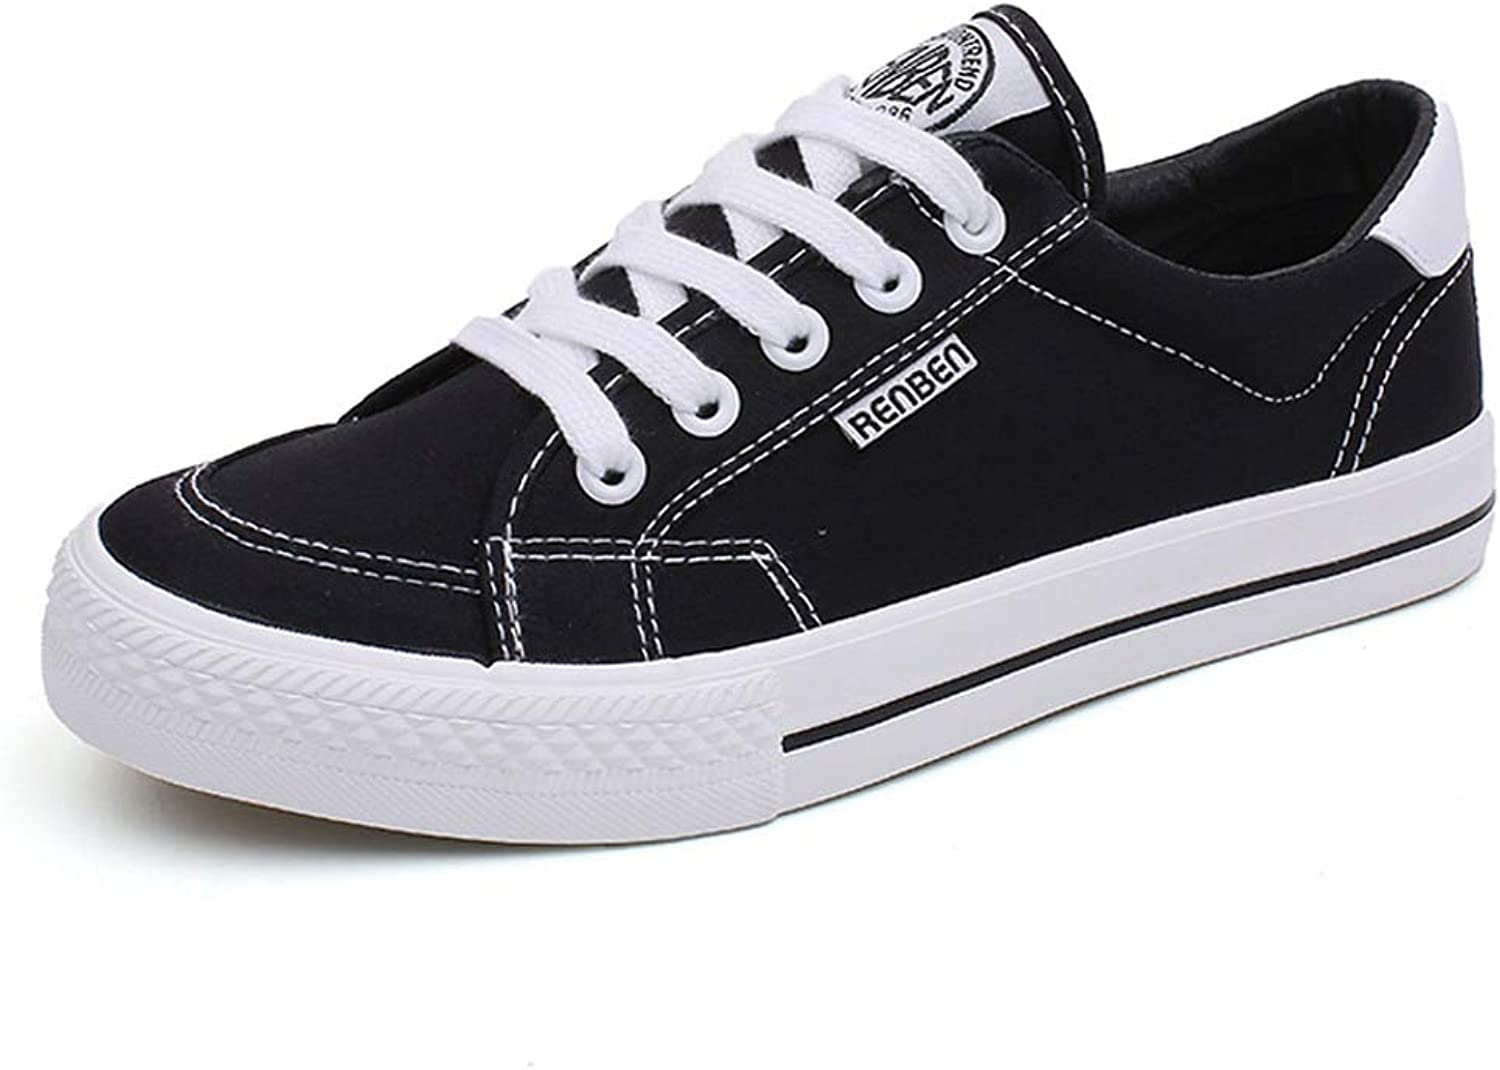 Fashion Black Low Top Canvas shoes Women's Comfortable Lace Up Sneakers Flat Casual shoes